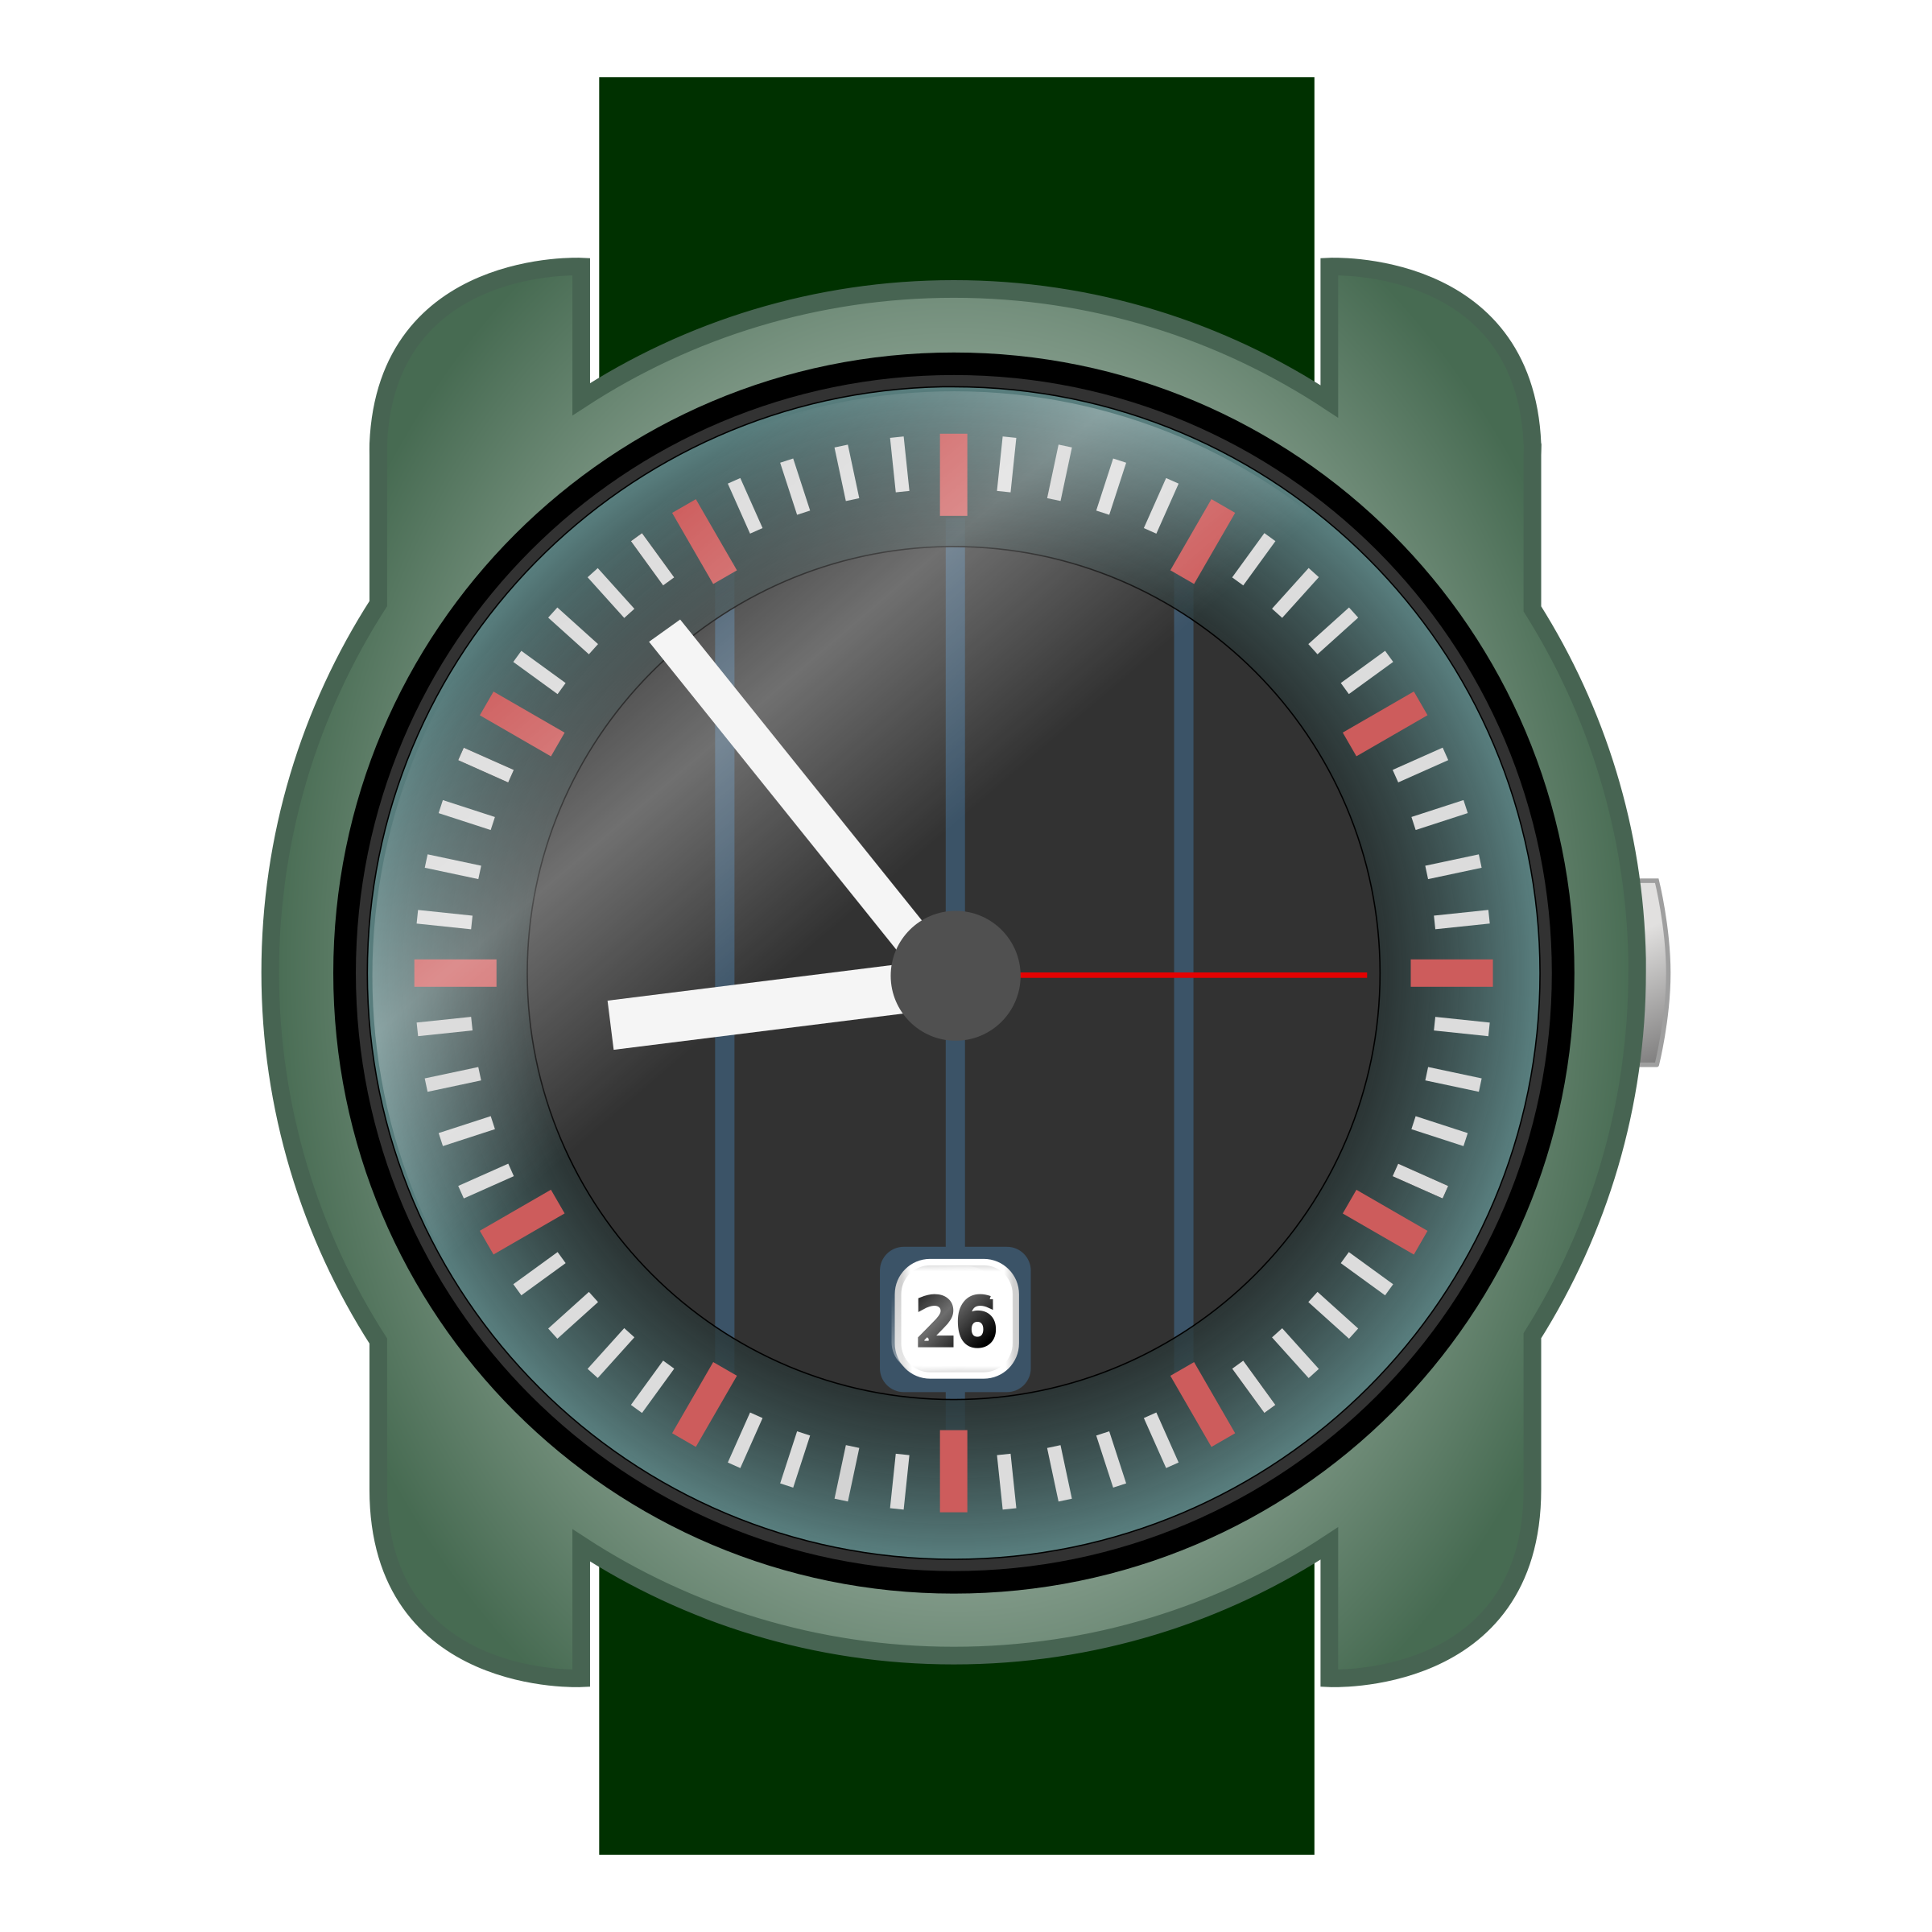 Analog wrist-watch by Stellaris